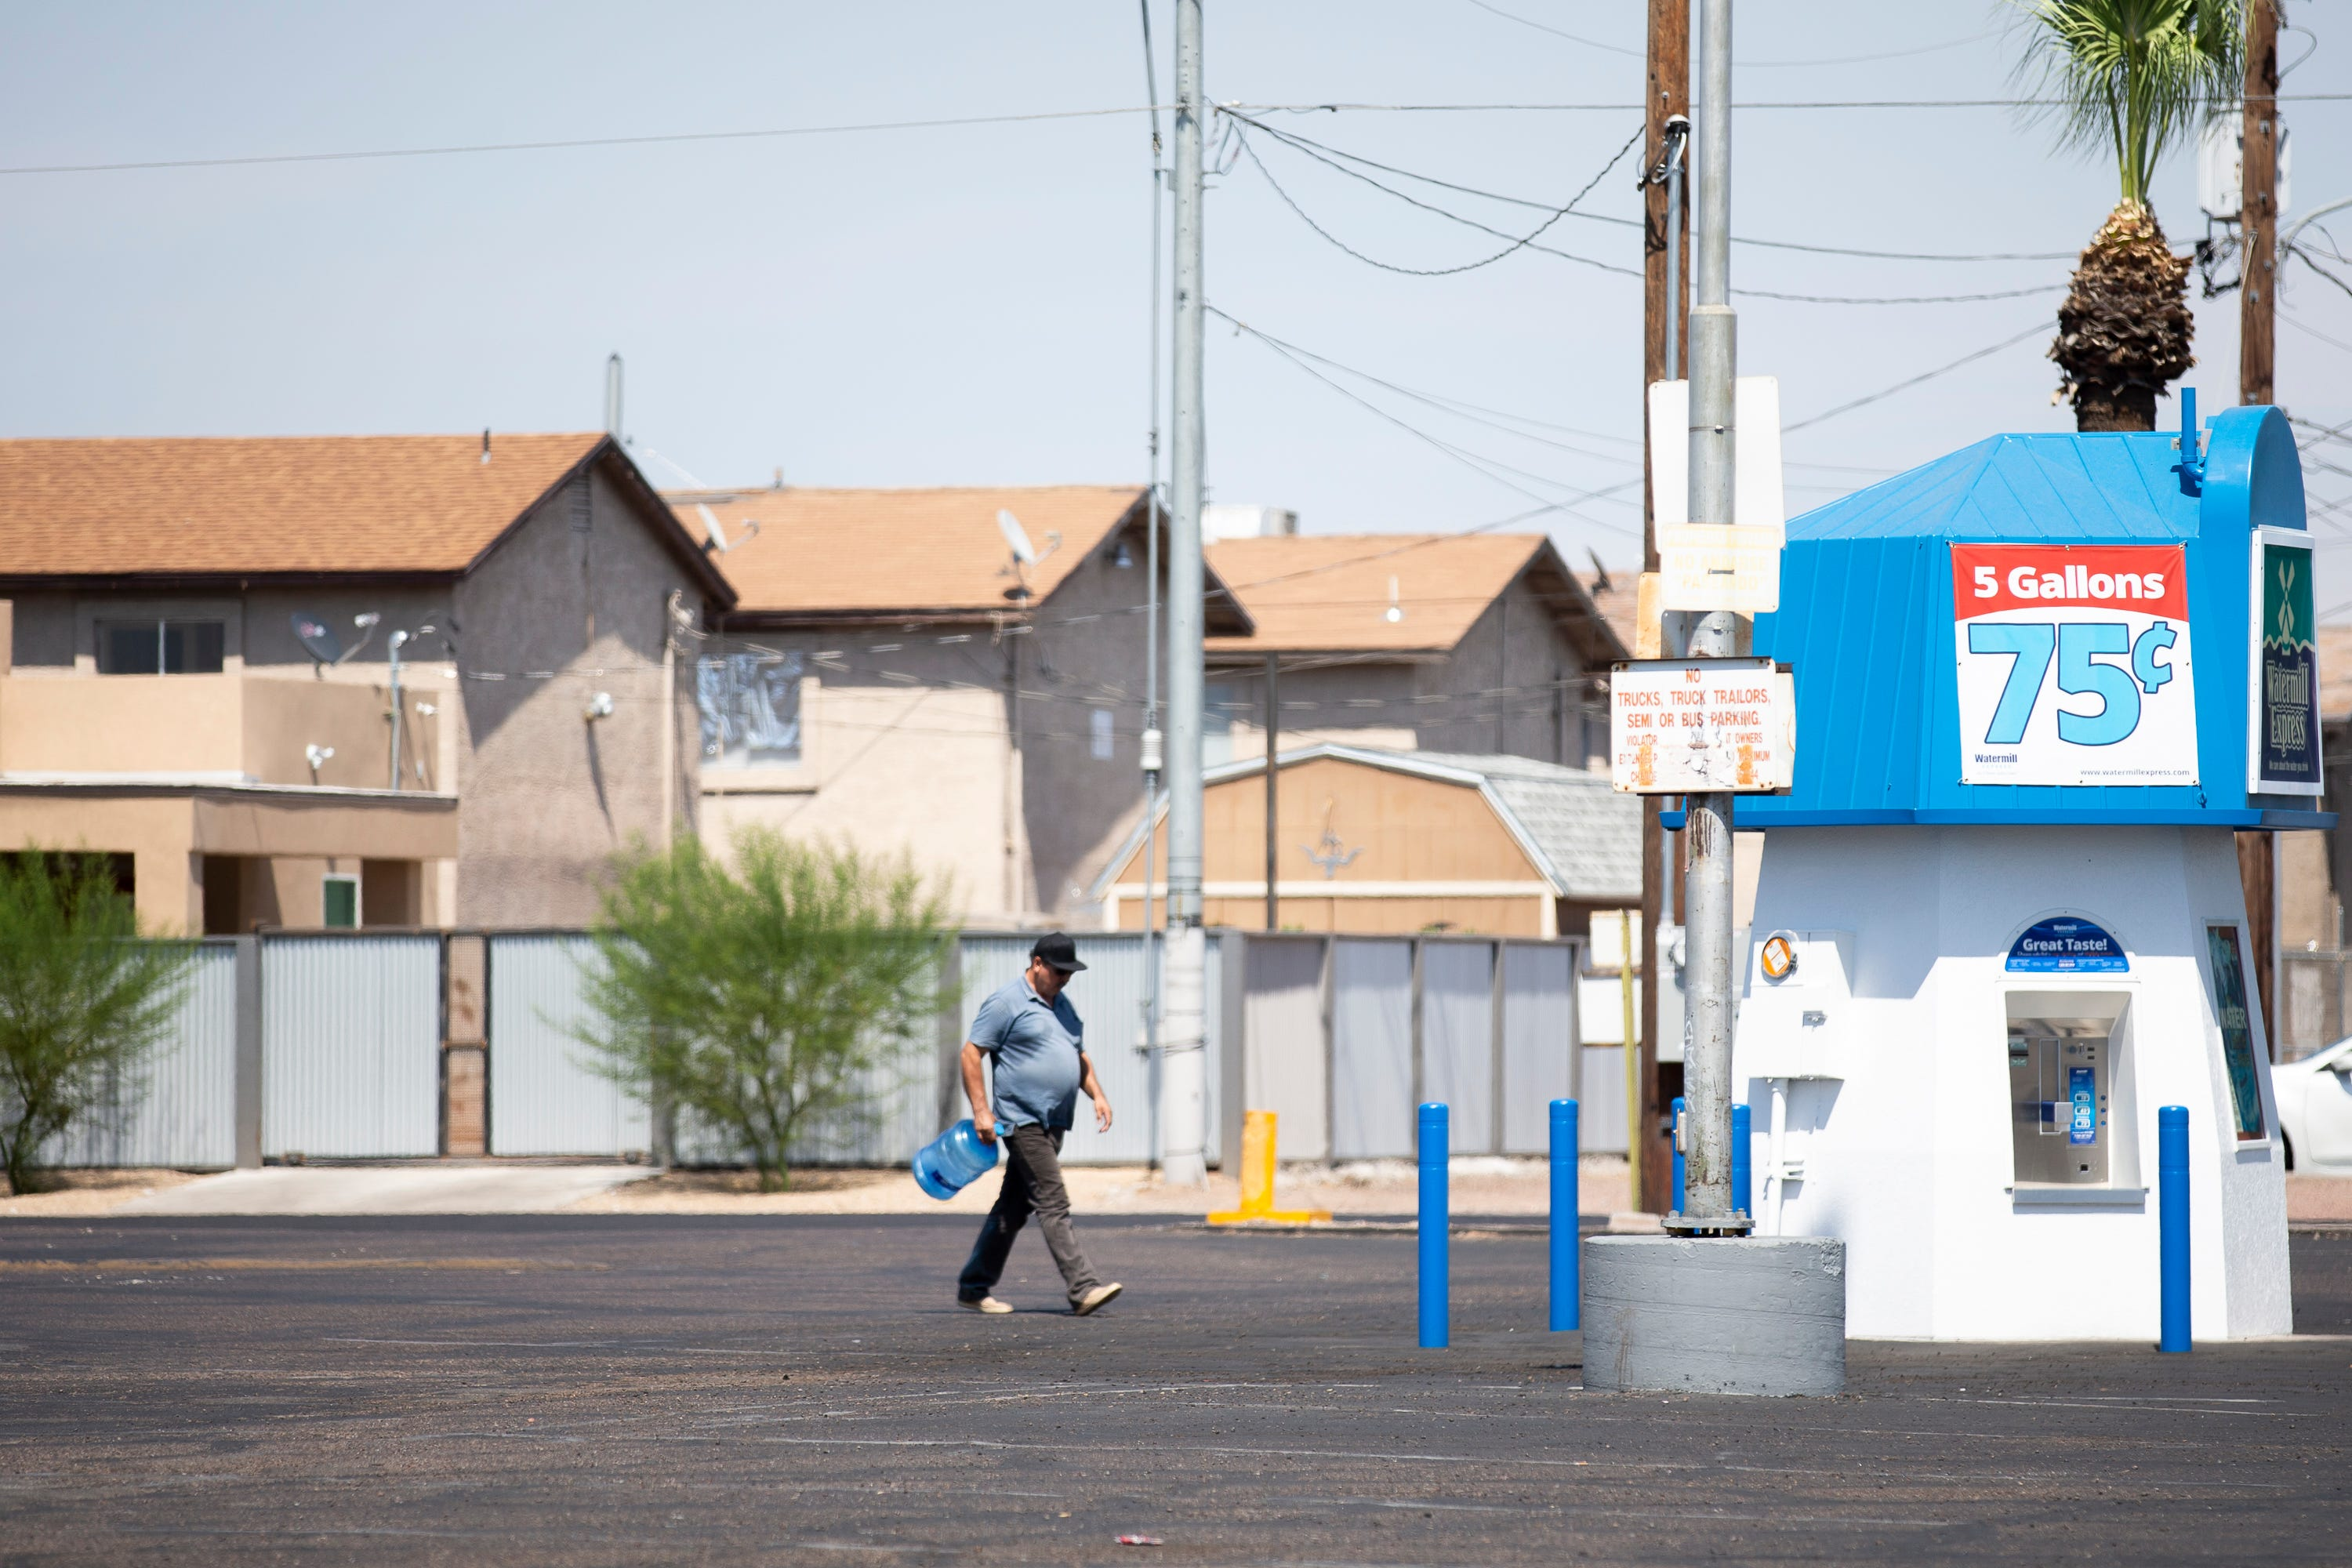 A man carries an empty jug to be filled at a water station at the corner of Van Buren Street and 33rd Avenue in Phoenix on July 15, 2020.